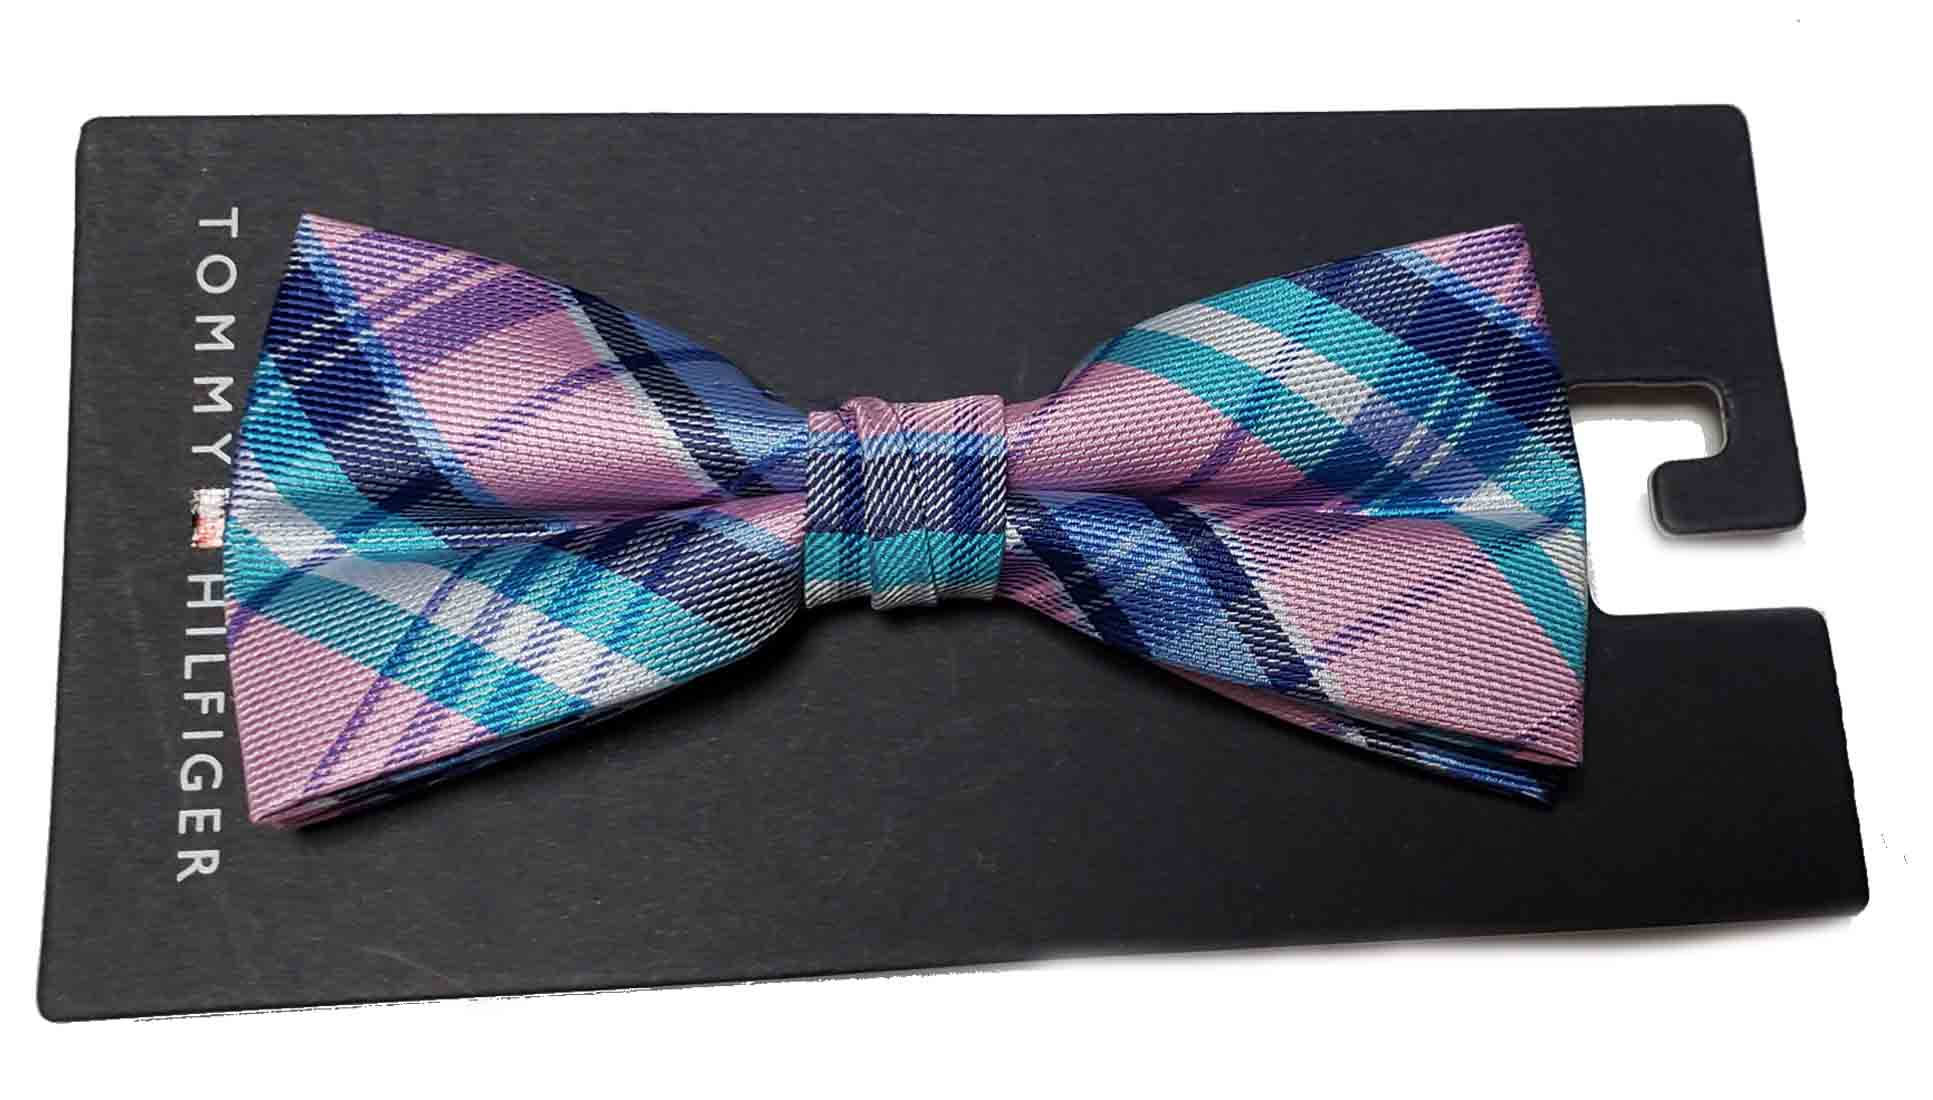 Tommy Hilfiger Bow Tie Plaid Pink Teal Blue Men's Pre-Tied OS